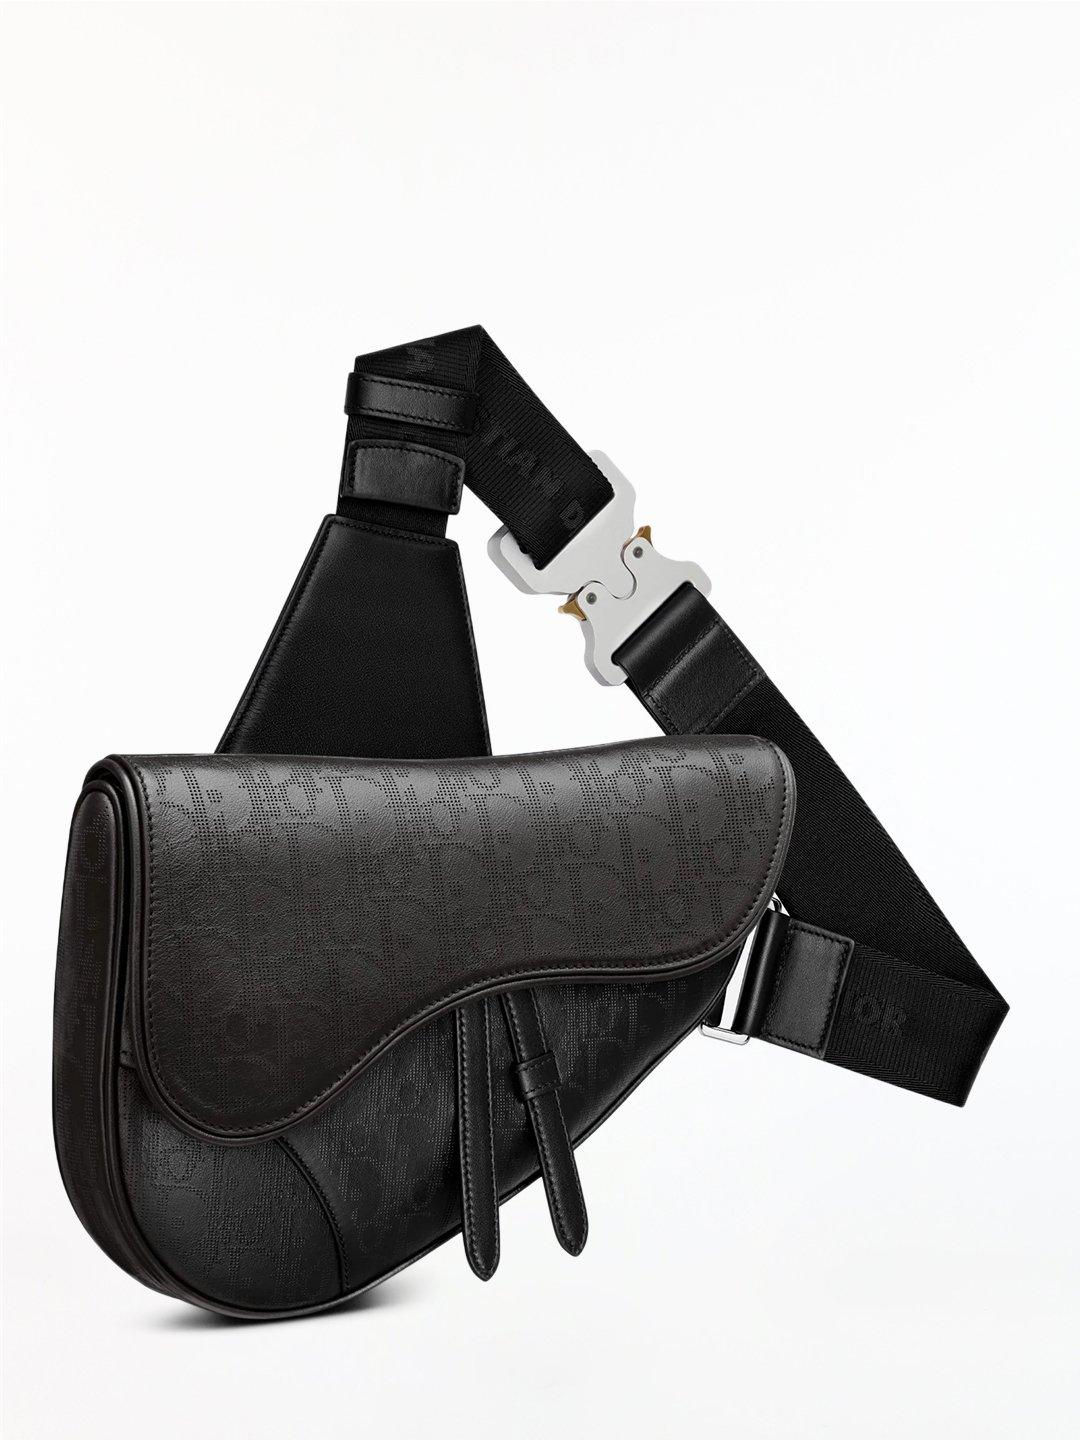 Saddle bag crafted in black Dior Oblique Galaxy leather, a smooth calfskin embellished with a perfor